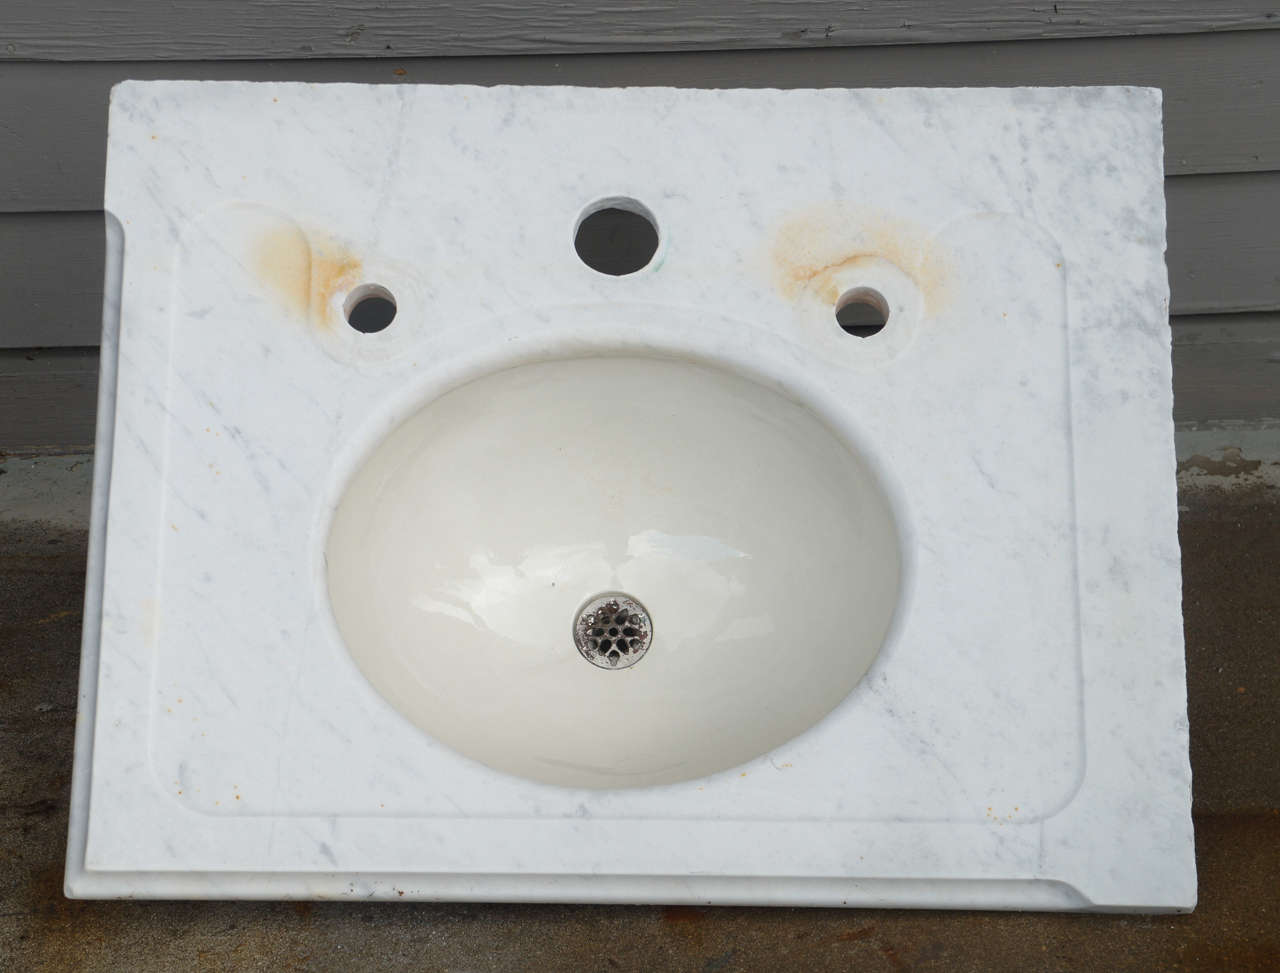 Beau Vintage Marble Vanity Sink Top With Newly Drilled Holes To Accommodate  Modern Fixtures. Some Rust